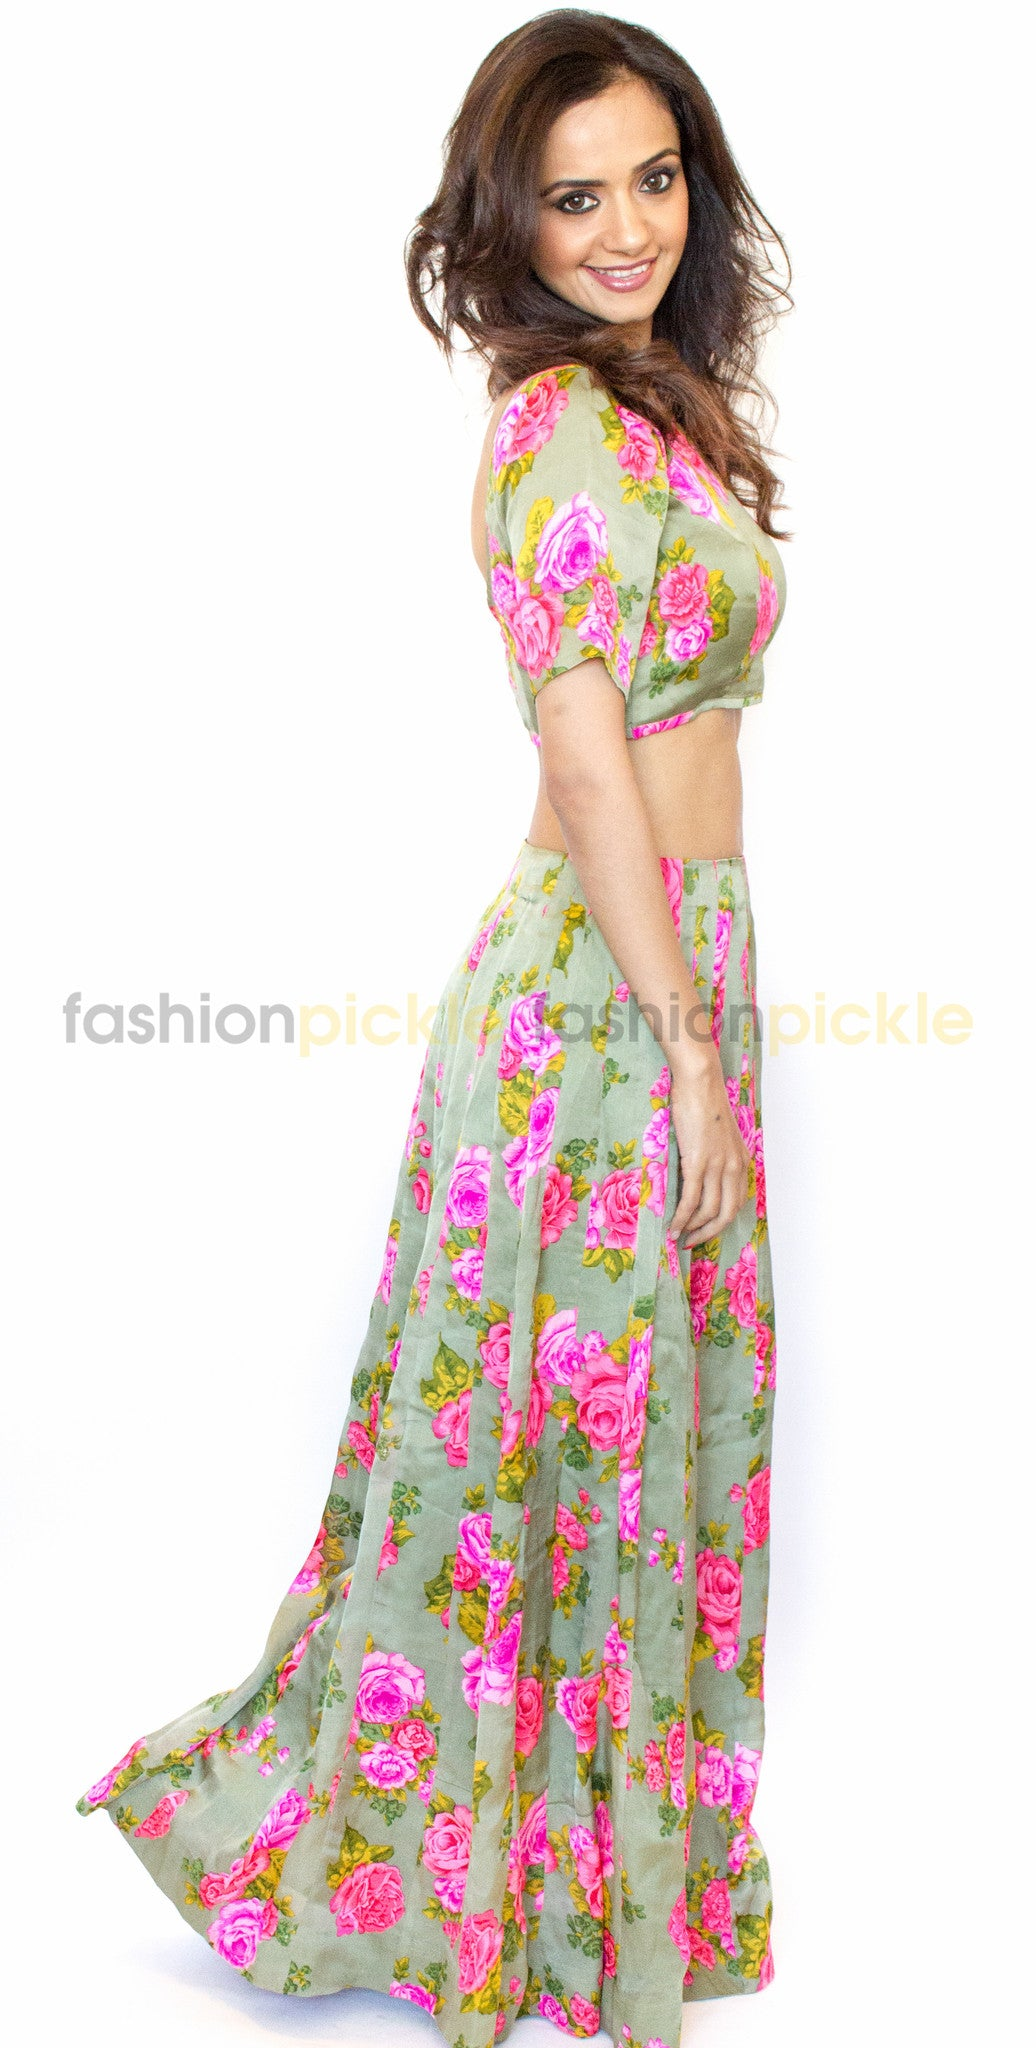 b236328d0060c Long Silk Skirt with Matching Crop Top - Fashion Pickle